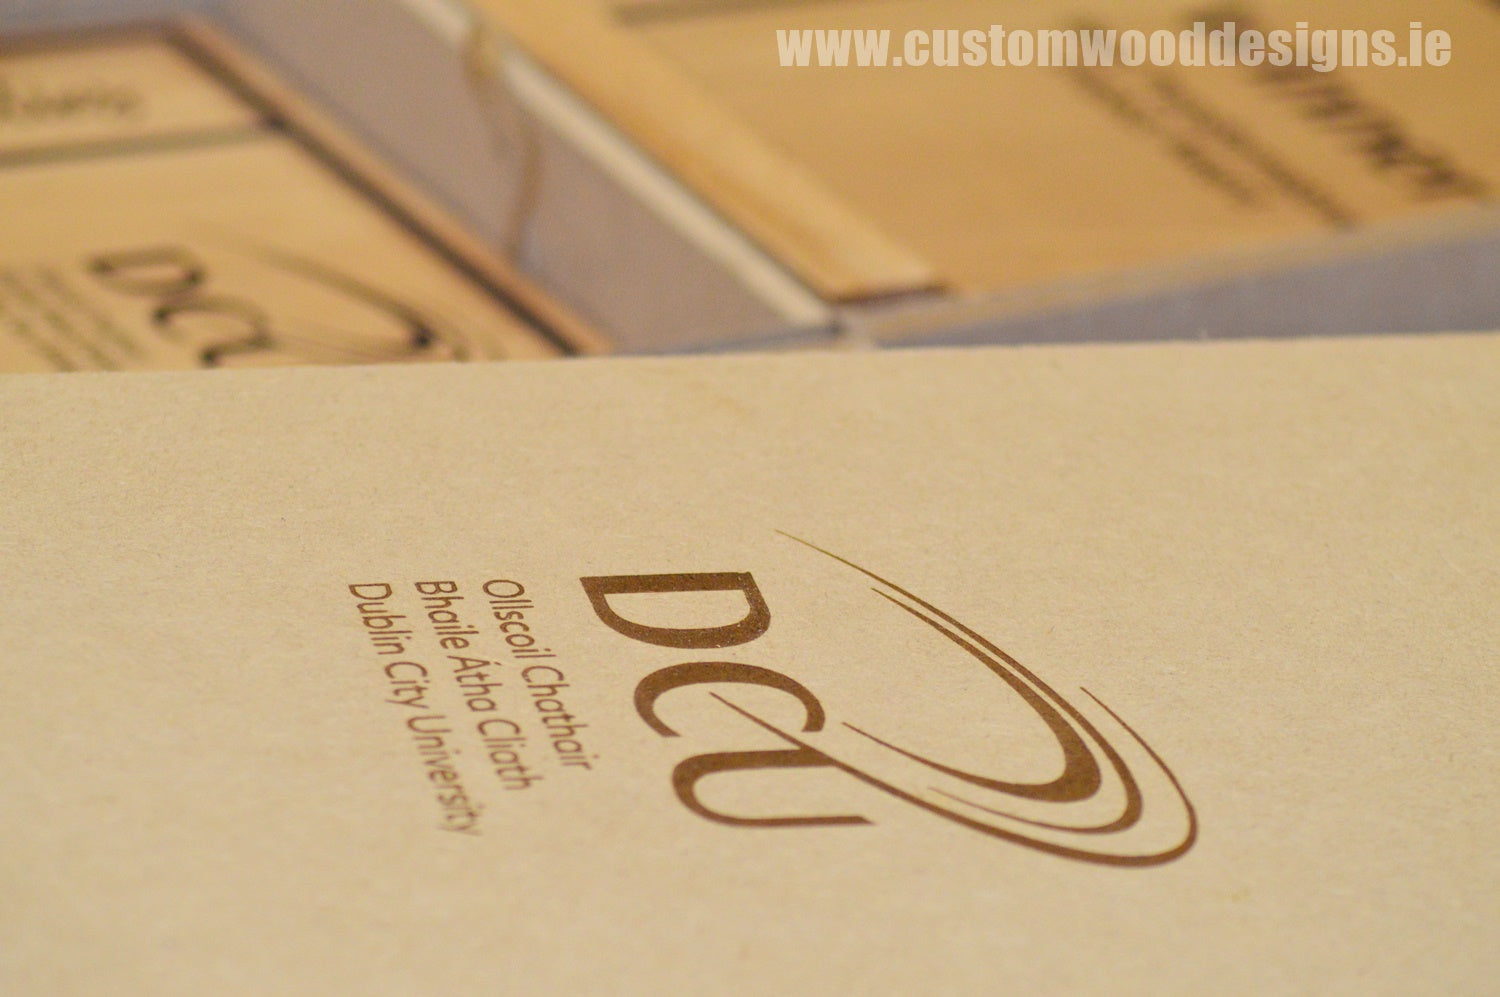 packaging mdf boxes mdf boxes manufacturer mdf box maker dublin mdf box maker ireland box maker dublin box maker packaging maker wooden box maker speciality box maker Ireland custom wood designs Ireland sent worldwide beautiful mdf boxes custom wood designs mdf board box maker black mdf boxes maker insert Mdf box maker product drop box maker product activation mdf boxes product boxes maker manufacturer branded mdf boxes laser engraved mdf boxes laser engraved mdf boxes voloured mdf boxes dublin mdf boxes with logo mdf boxes with branding on custom made mdf boxes shipped worldwide exclusive boxes irealdn high end boxes gift mdf boxes present mdf boxes